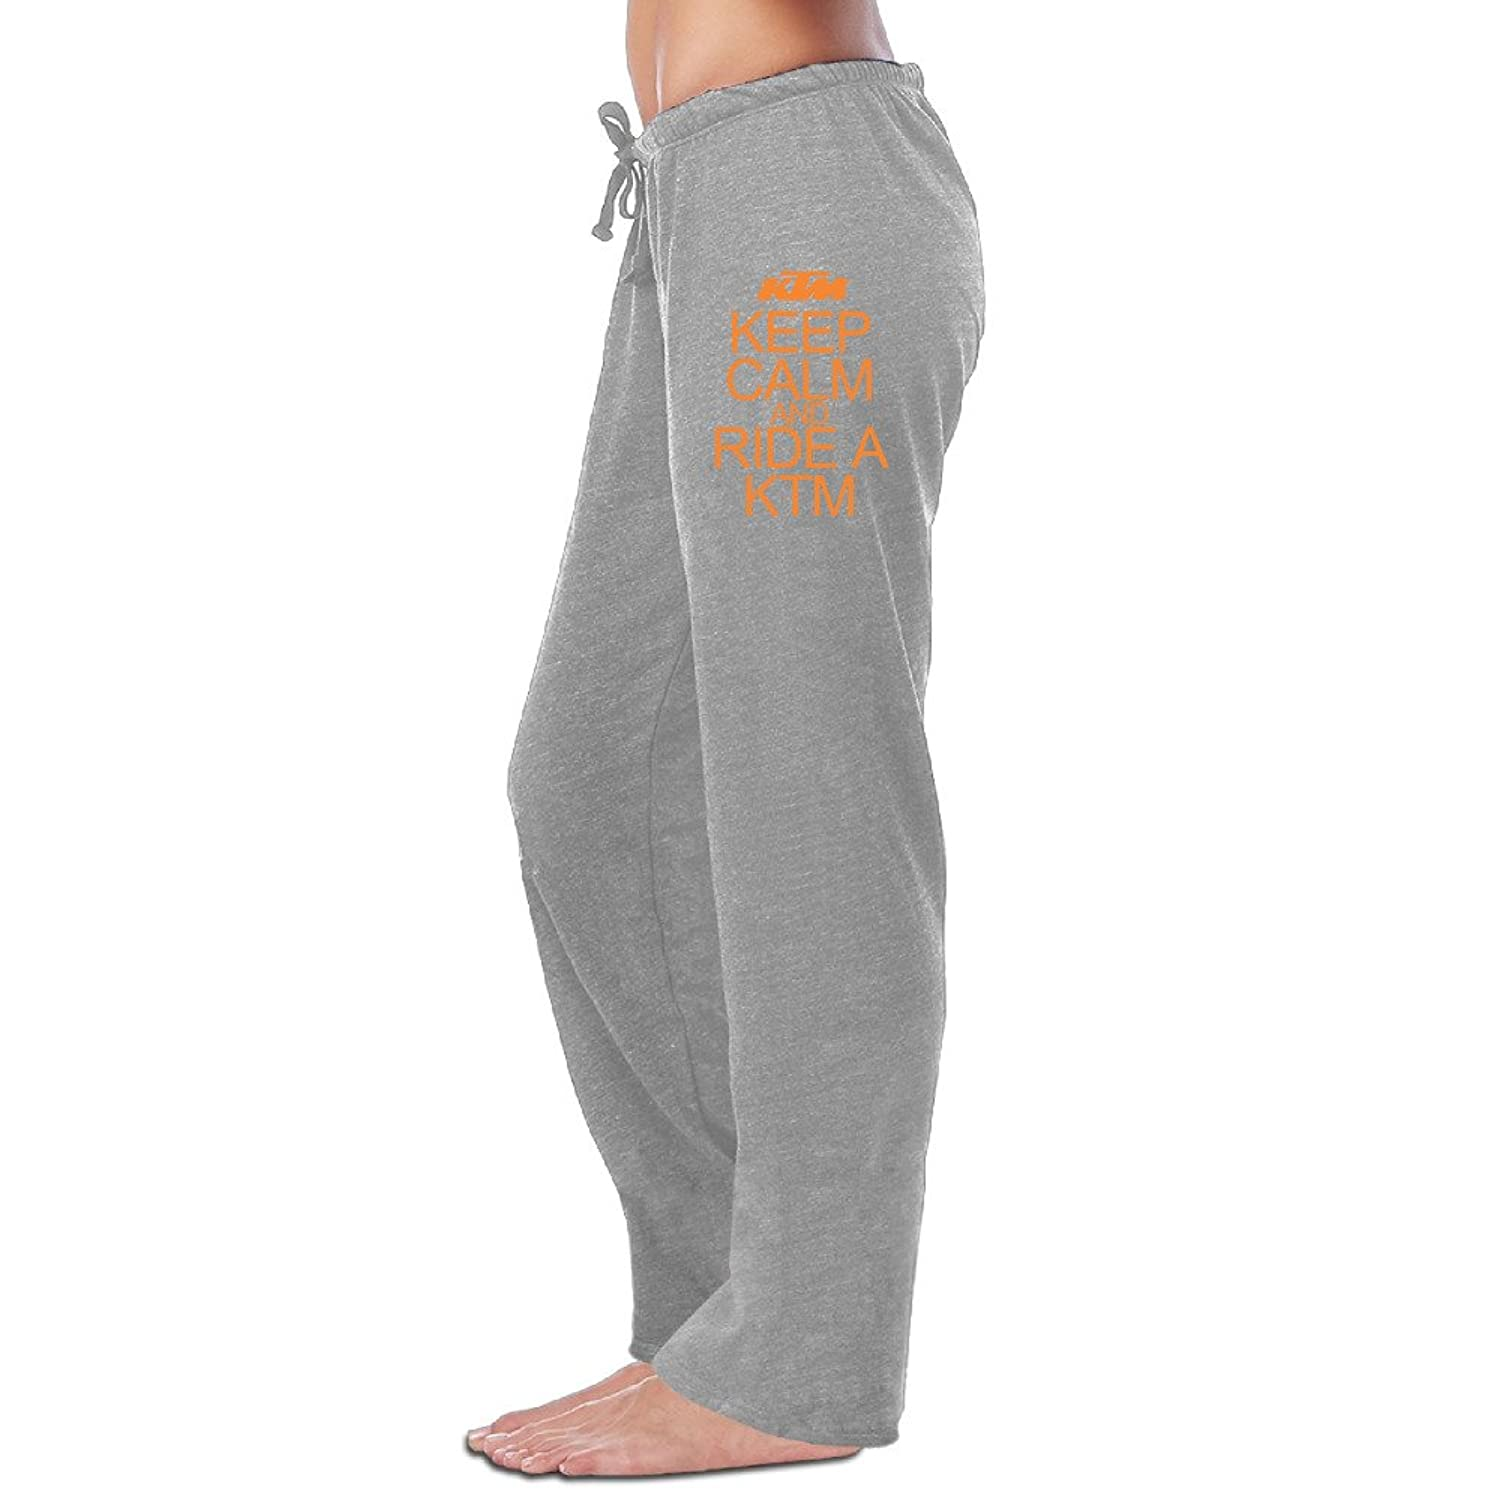 TopBee Keep Calm And Ride Comfortable Sweatpants